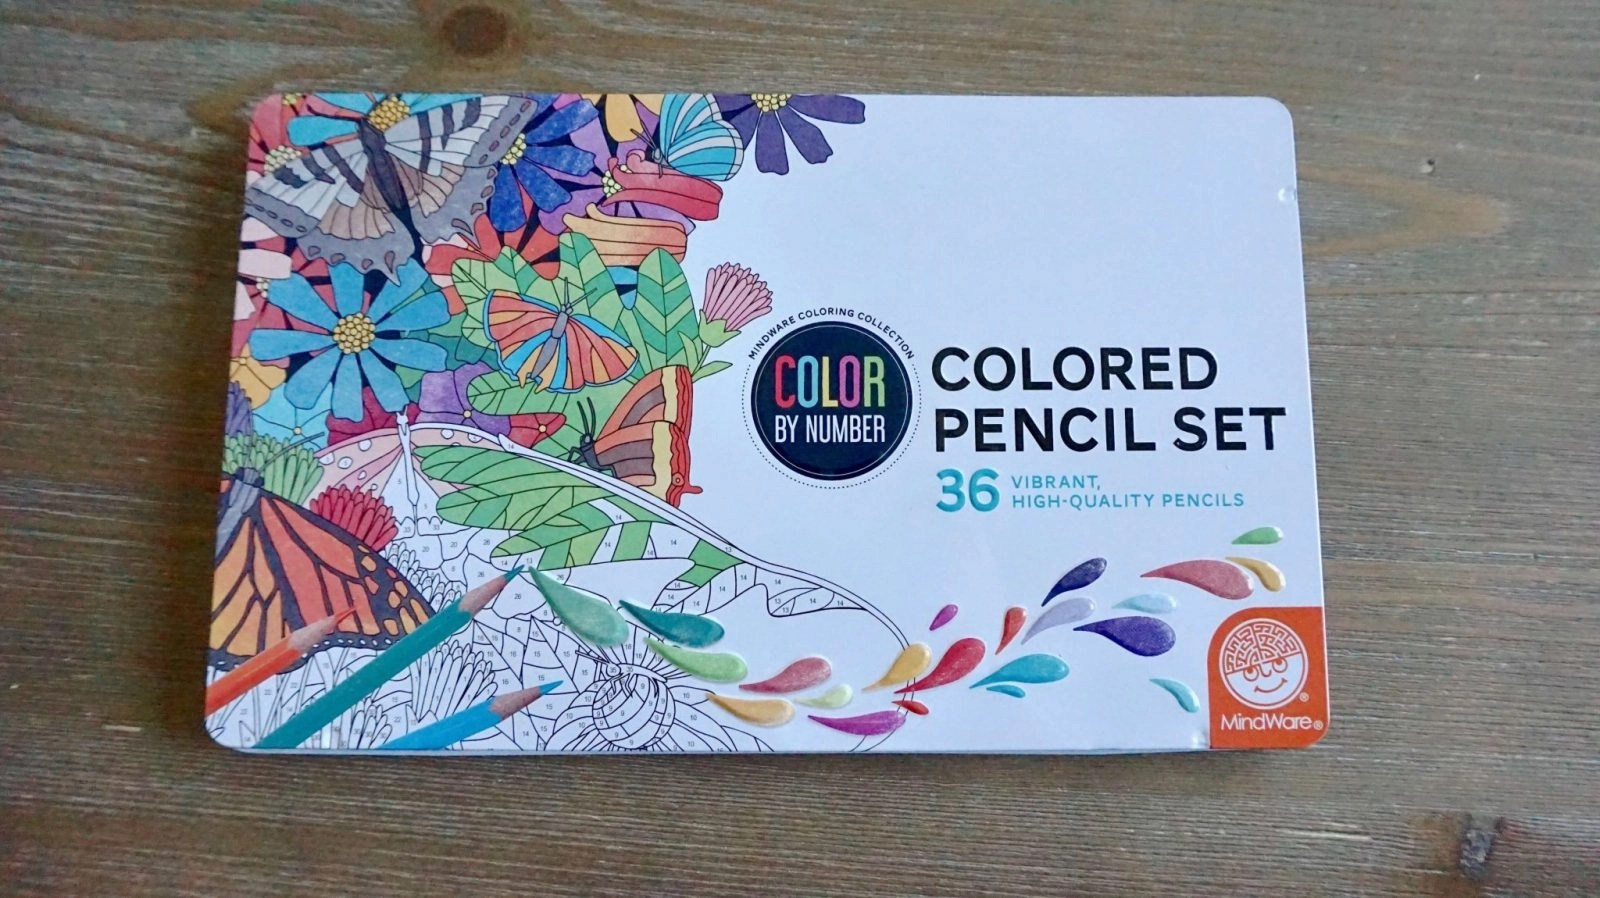 Color By Number Color Pencil Set Packaging